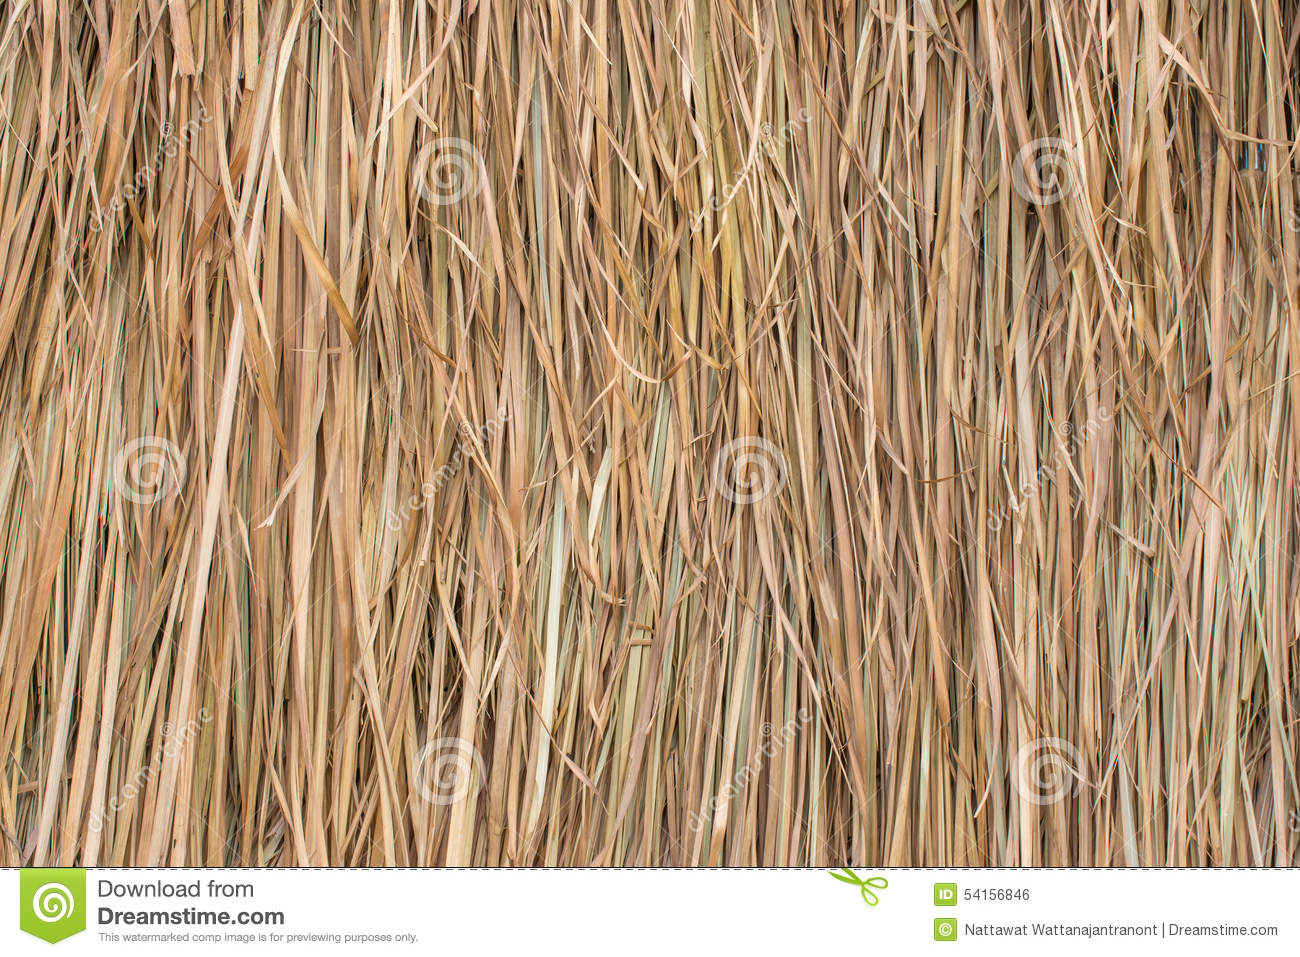 Thatched Roof Made From The Leaves Of Grass Stock Photo